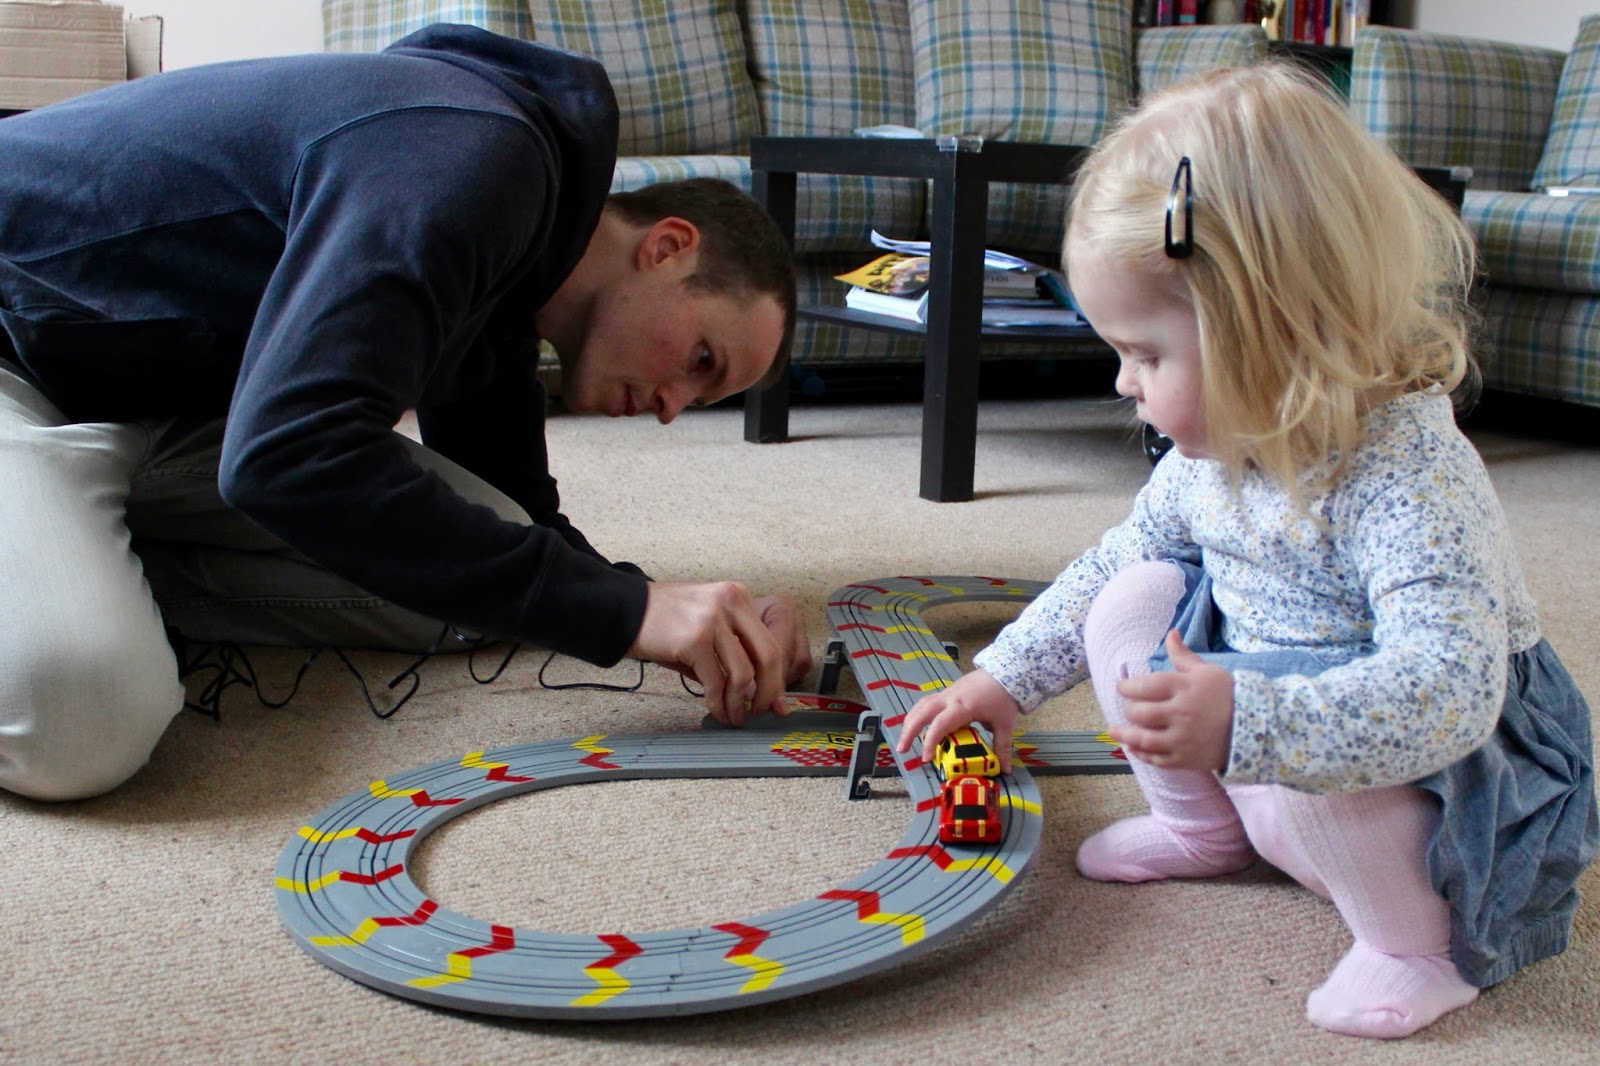 Elise (2 years old) places two cars on the Scalextric track whilst my husband connects the controllers. There is a red car and a yellow car.